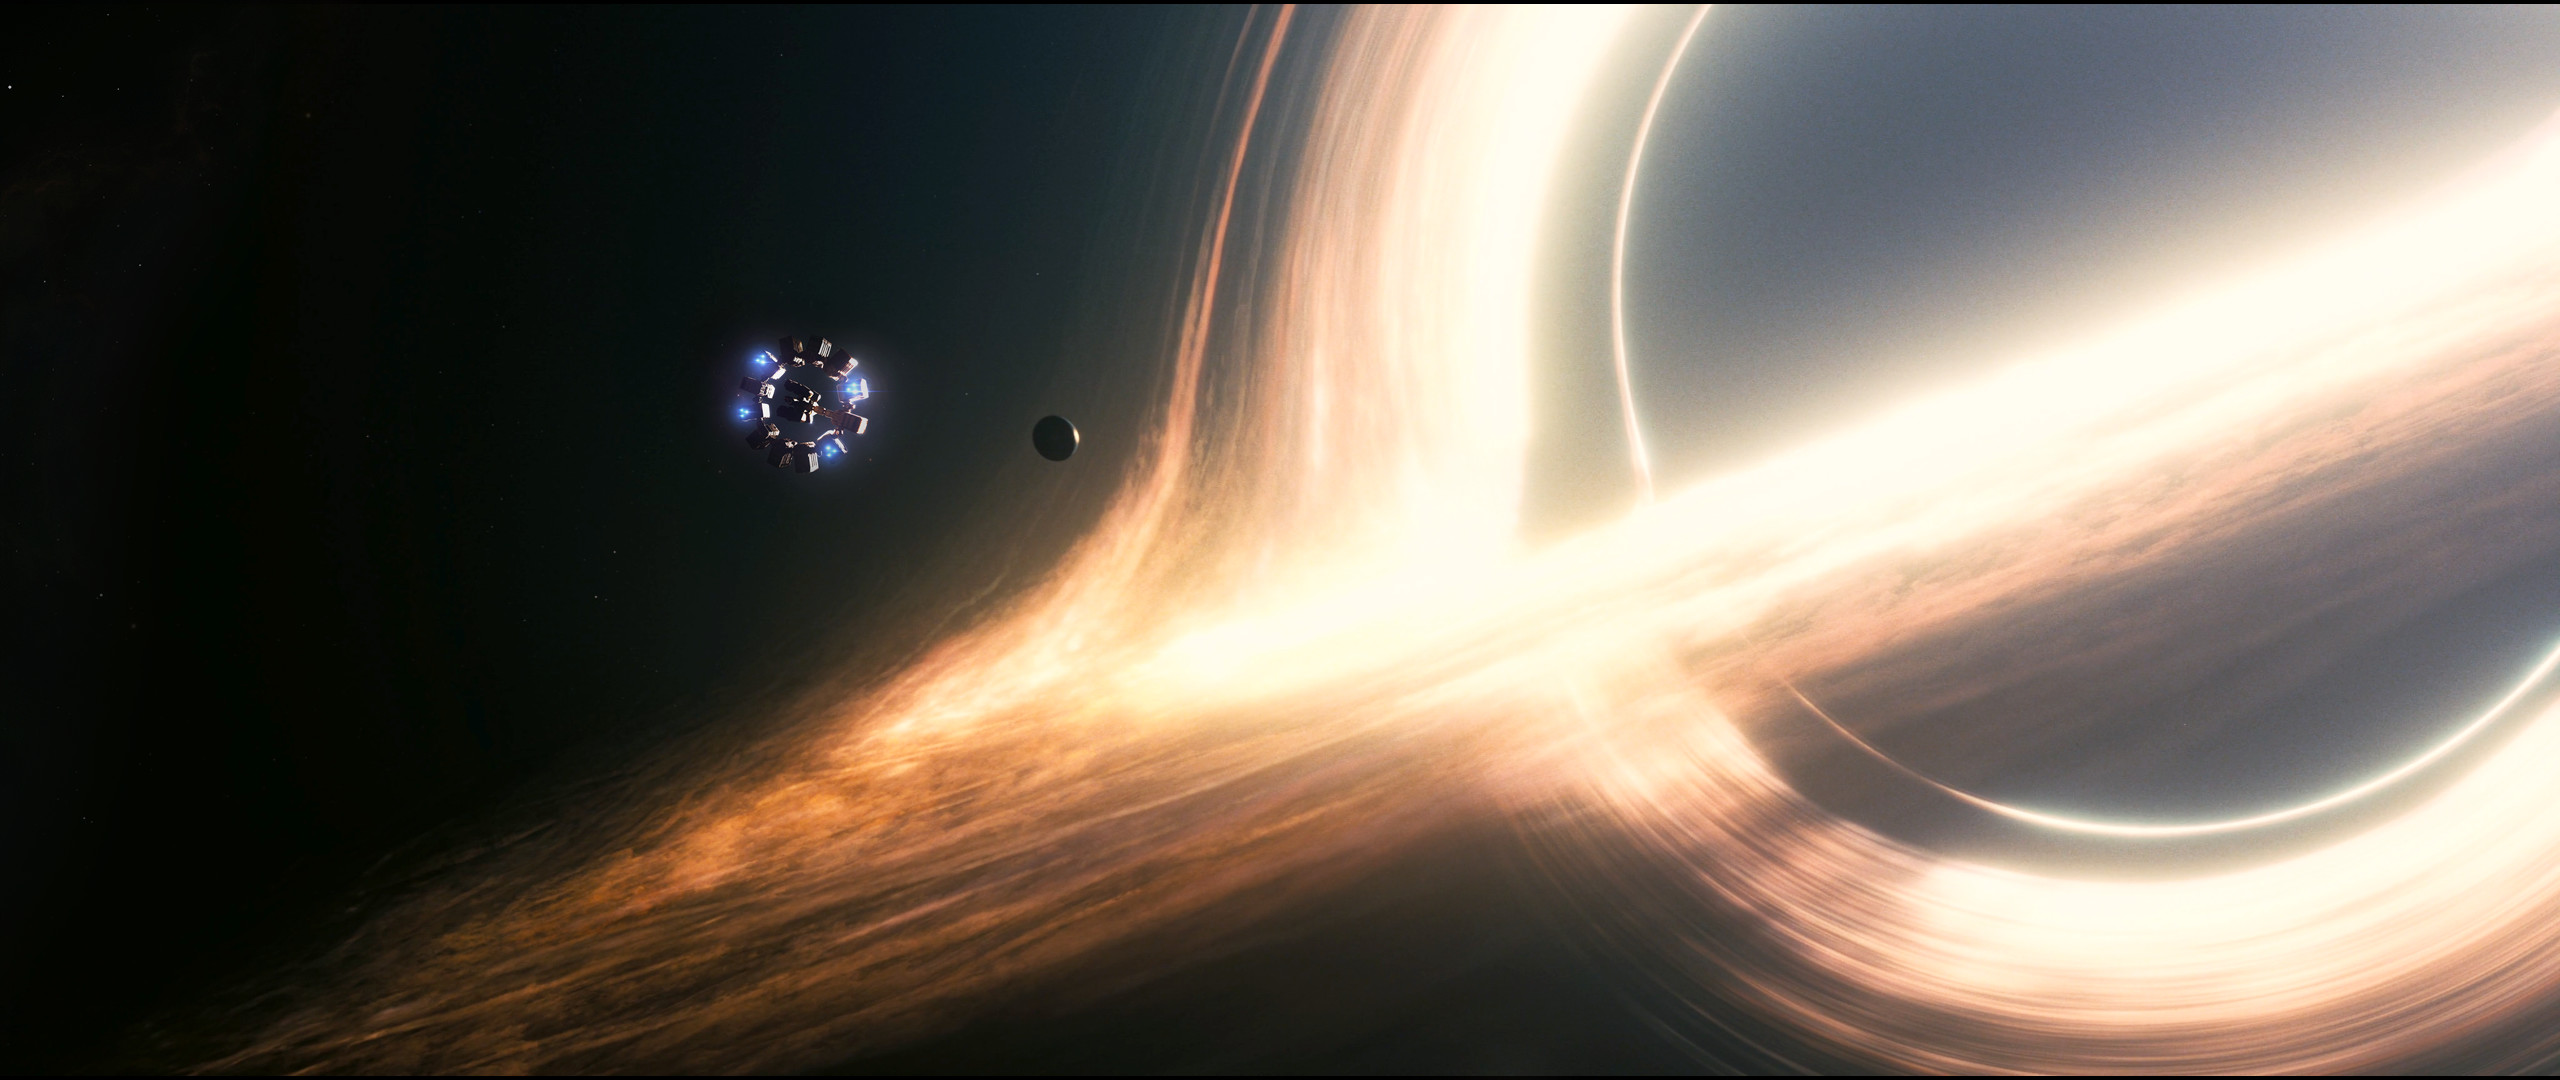 2560x1080 - Black Hole Wallpapers 34